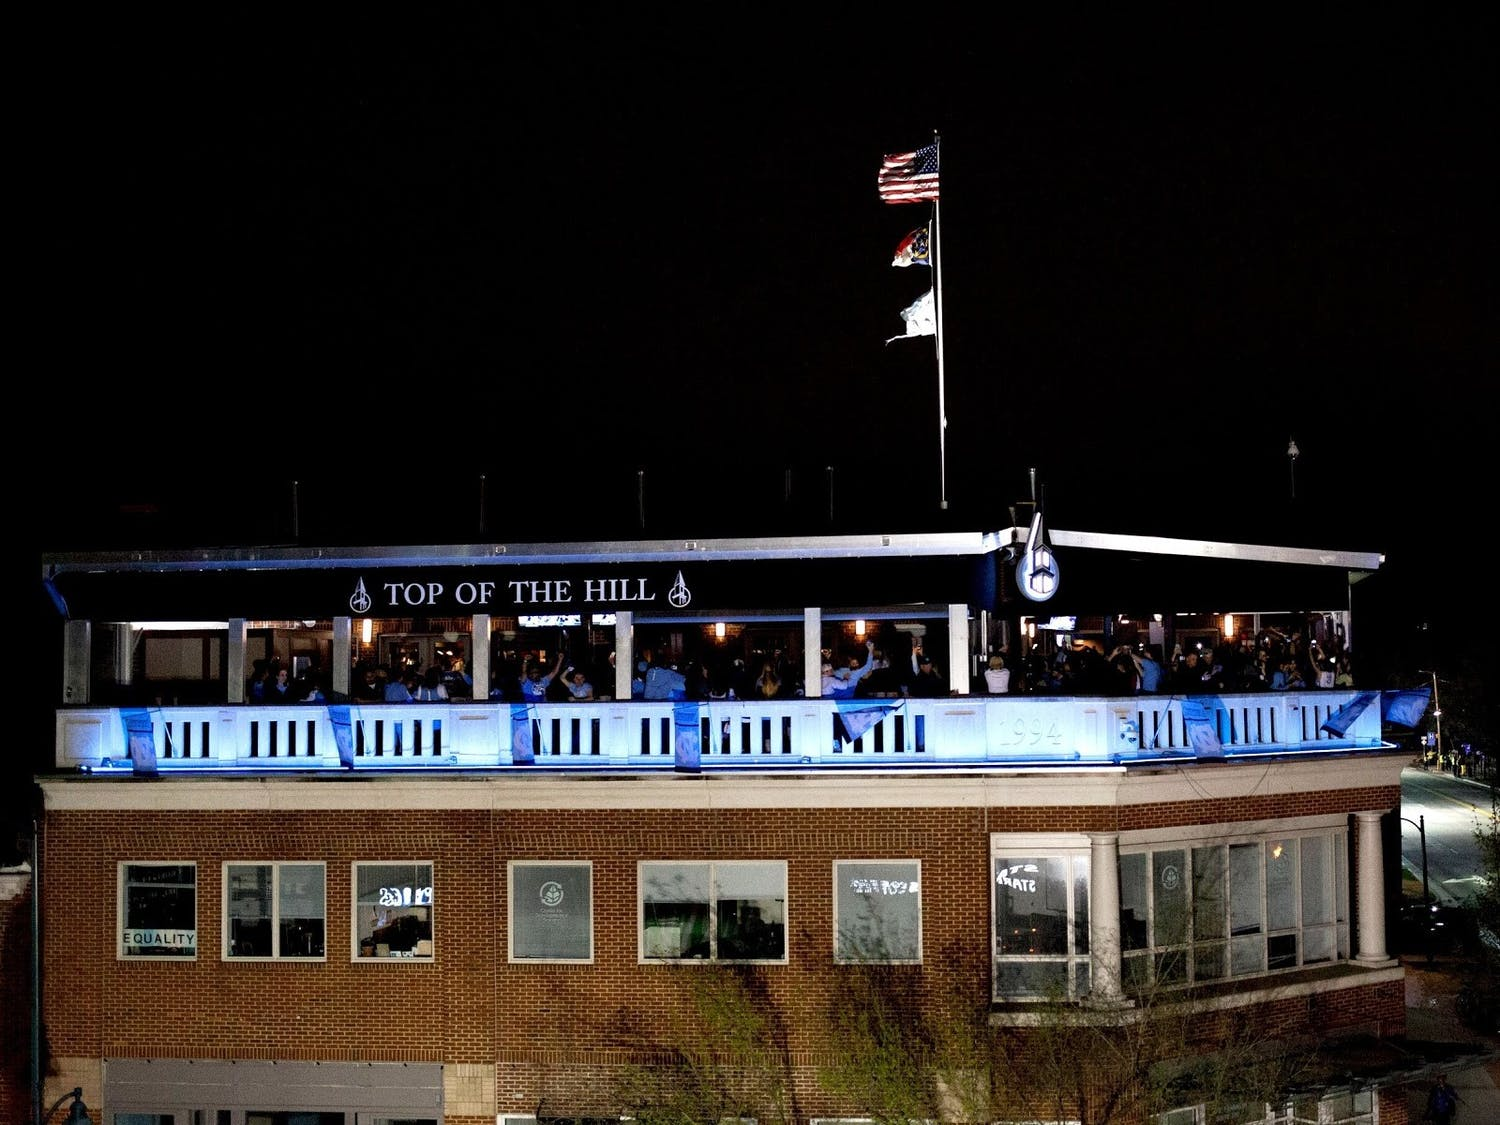 Top of the Hill lit up after the 2017 Men's Basketball NCAA Tournament Championship. From https://www.thetopofthehill.com/toporestaurant